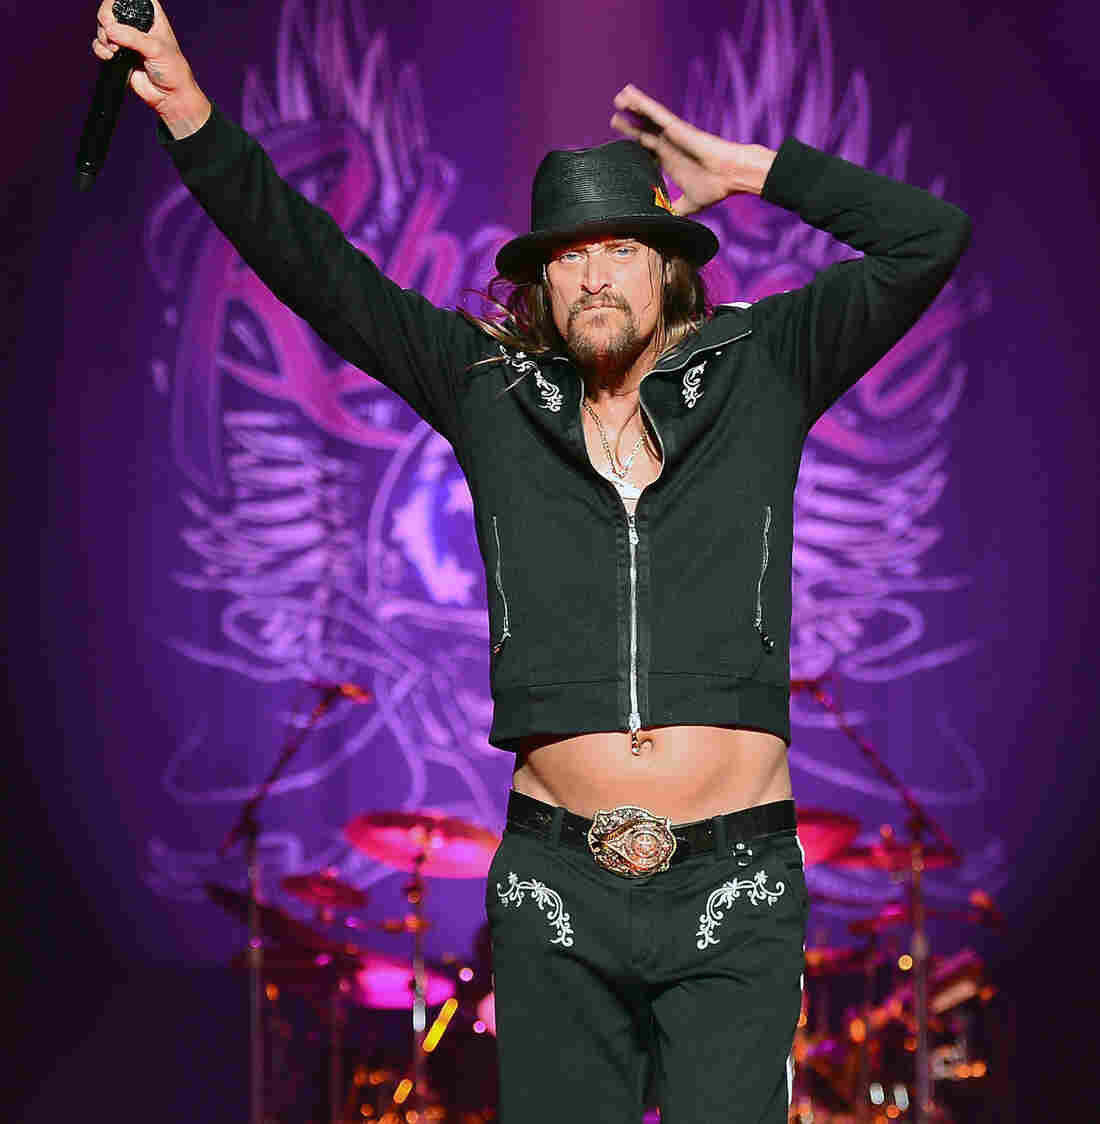 Kid Rock performs in Las Vegas.